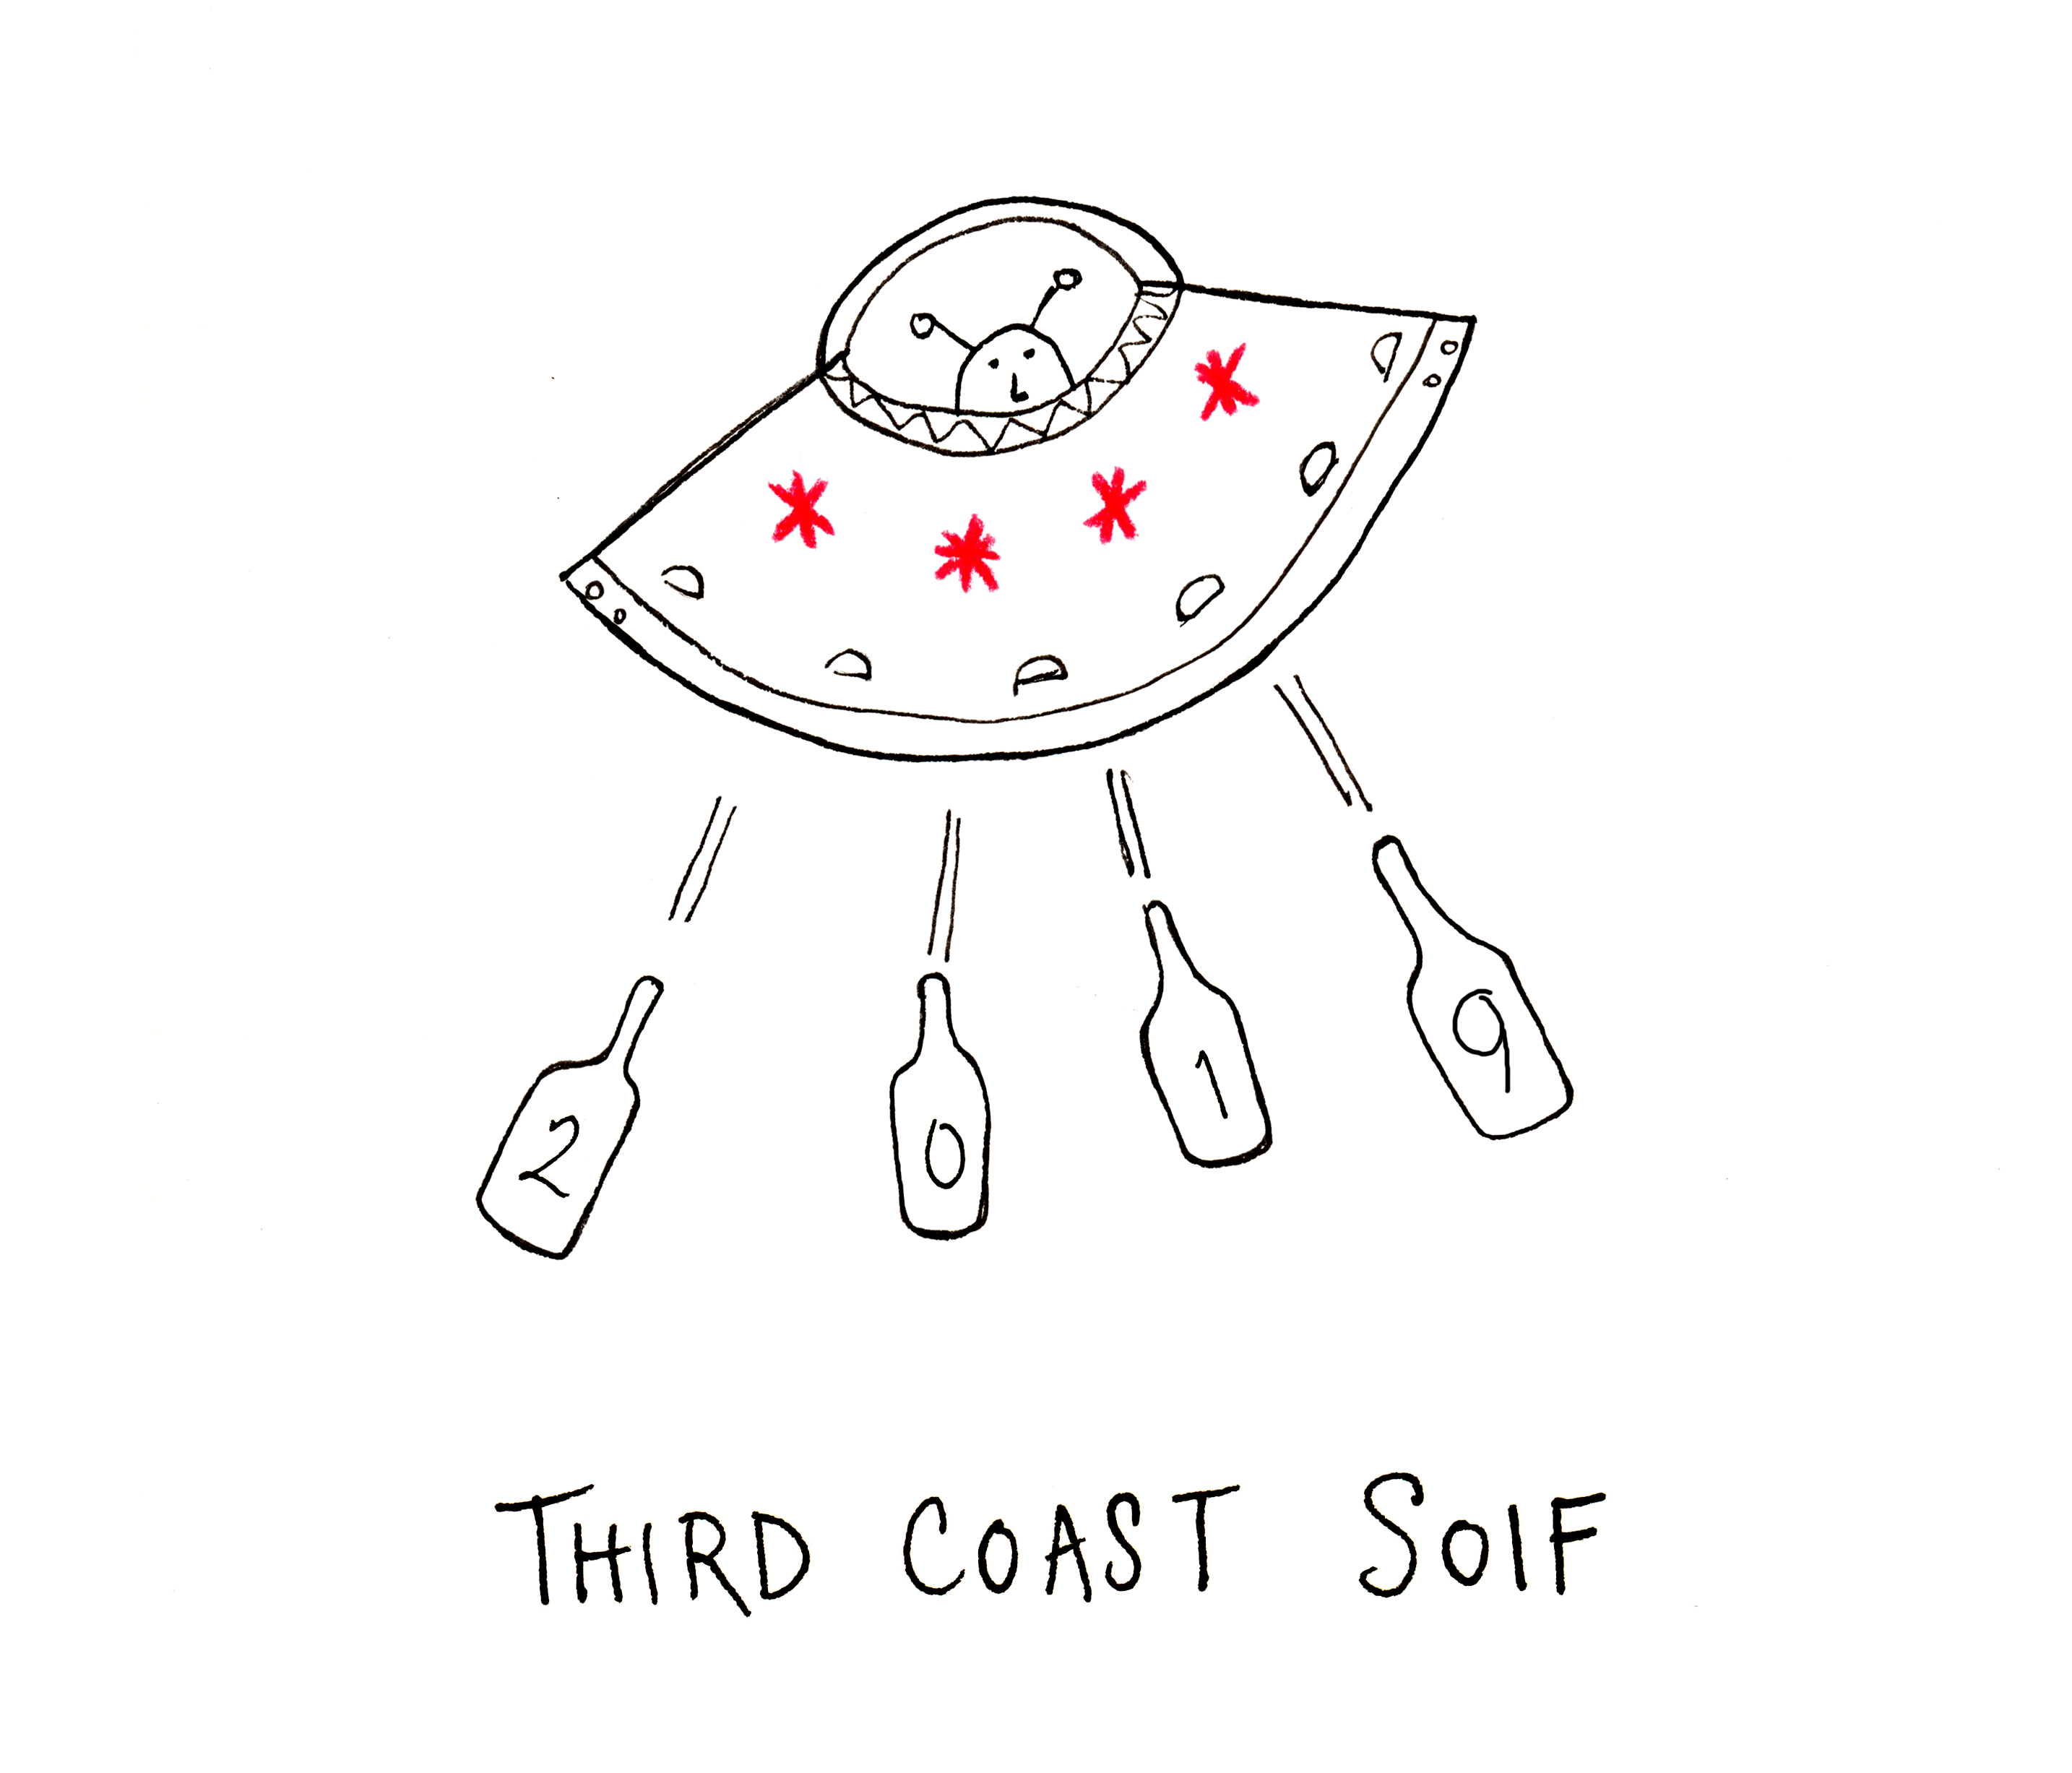 THIRD COAST SOIF 2019